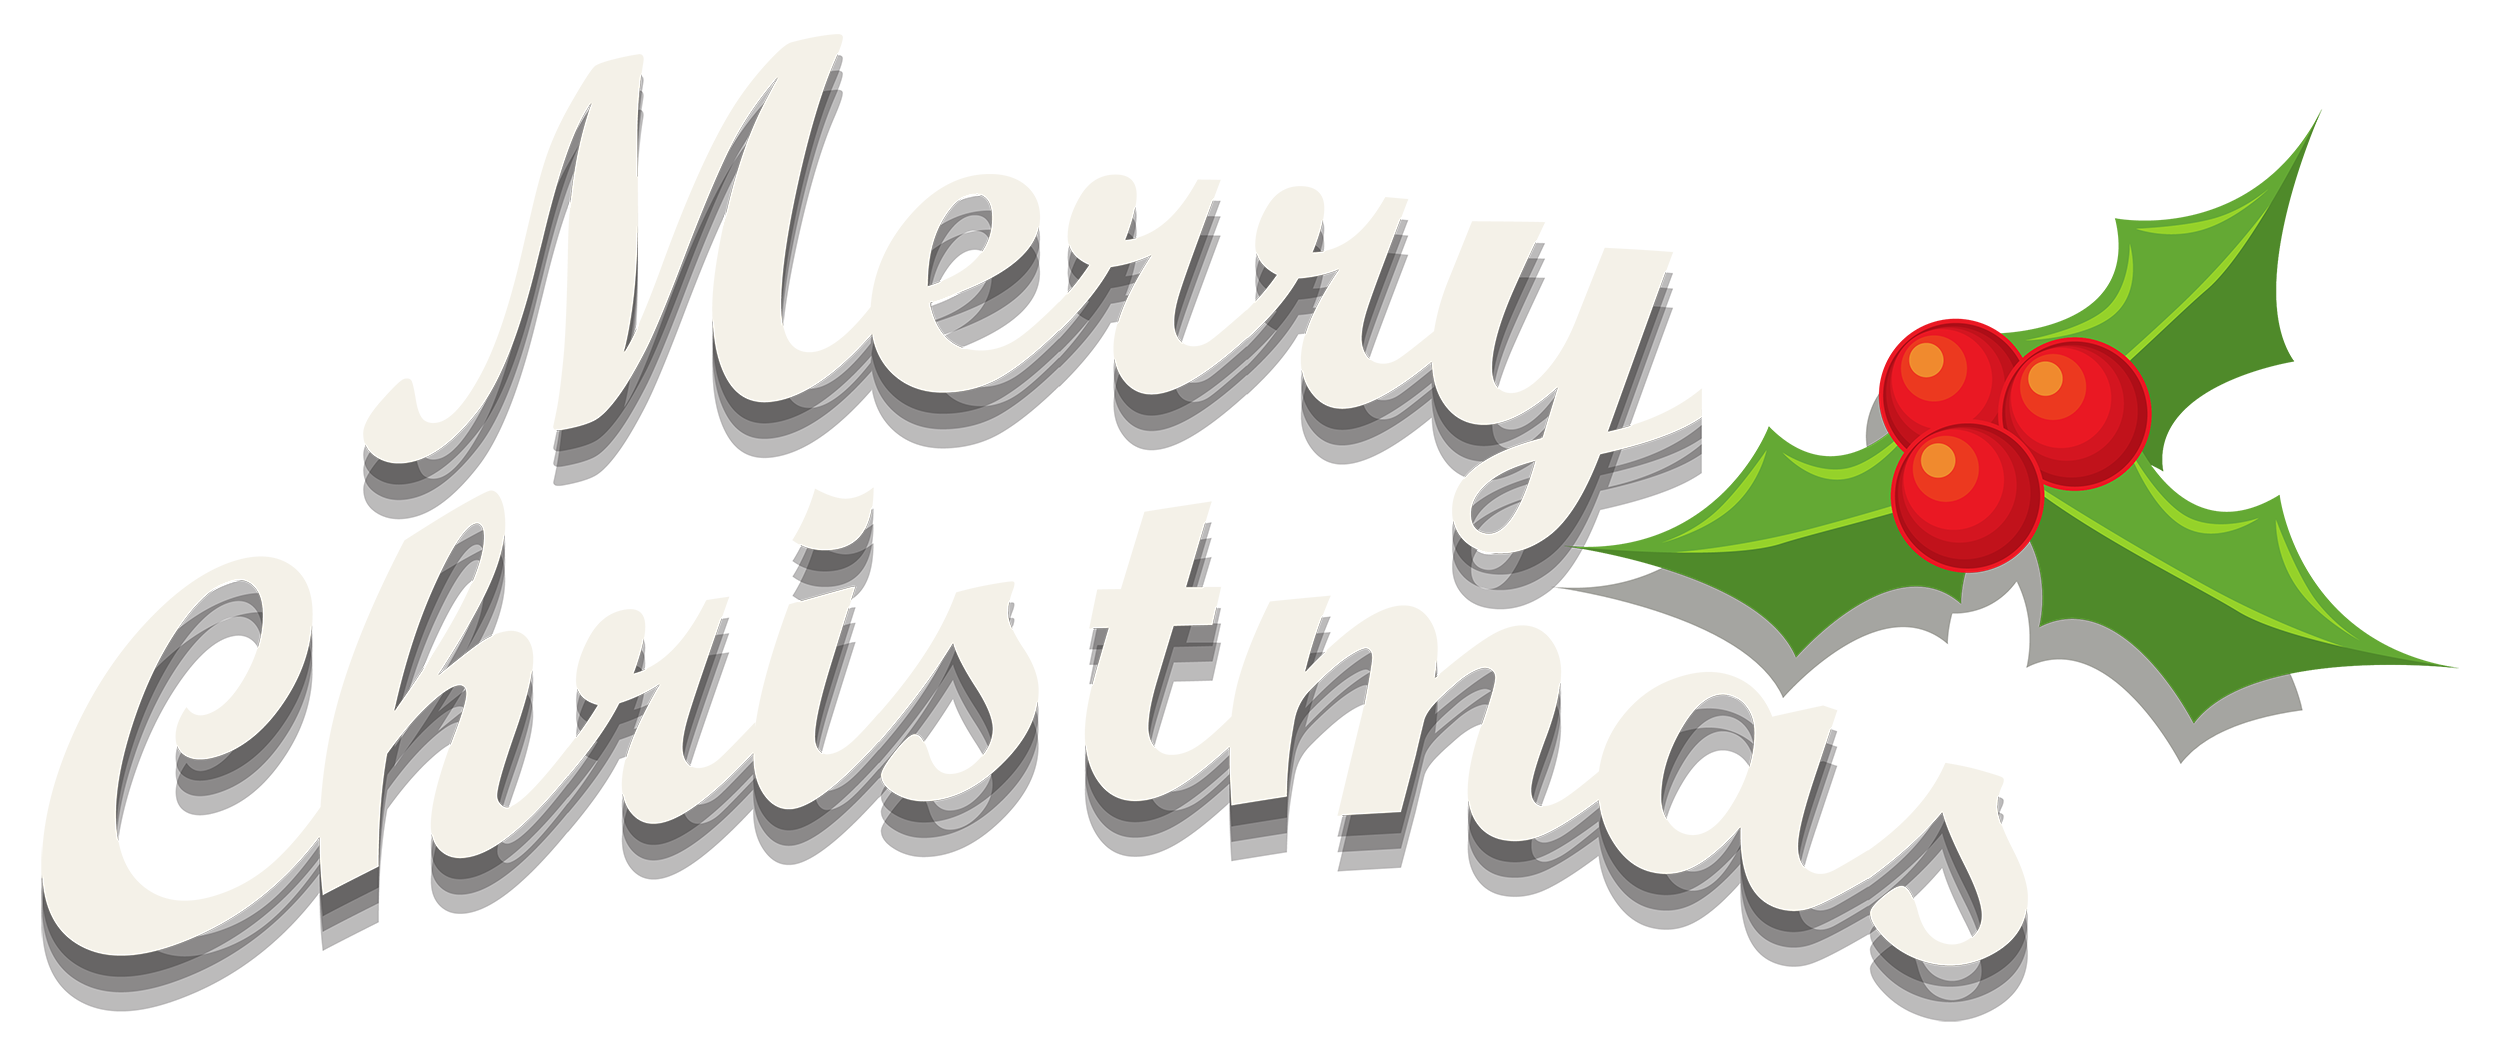 picture stock Decor with png best. Mistletoe clipart merry christmas.